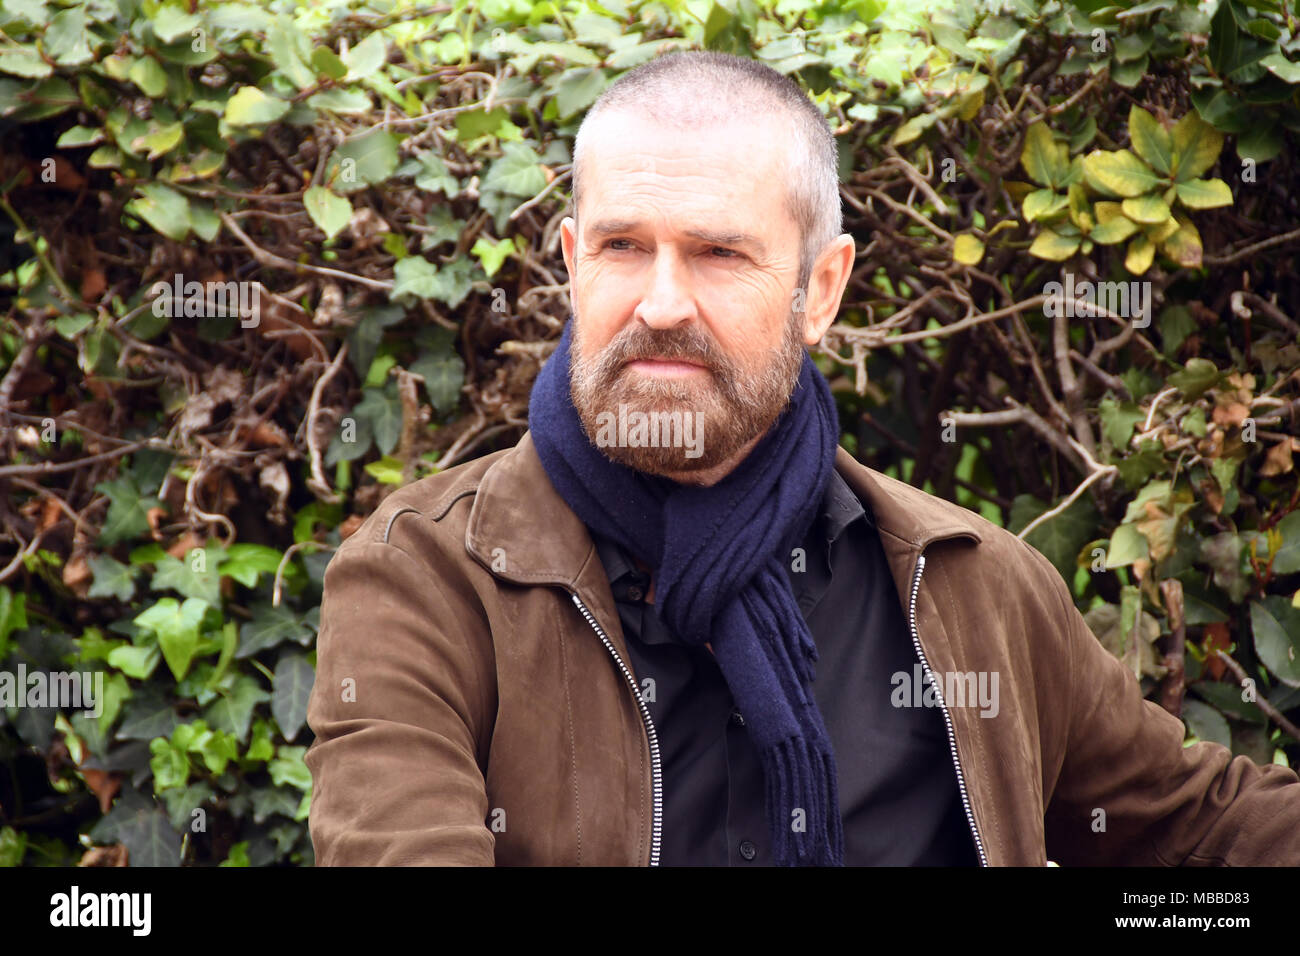 Rome Italy 10 April 2018 Cinema House - Photocall film presentation THE HAPPY PRINCE L'ULTIMO RITRATTO DI OSCAR WILDE, Rupert Everett protagonist and director of the film. Credit: Giuseppe Andidero/Alamy Live News - Stock Image